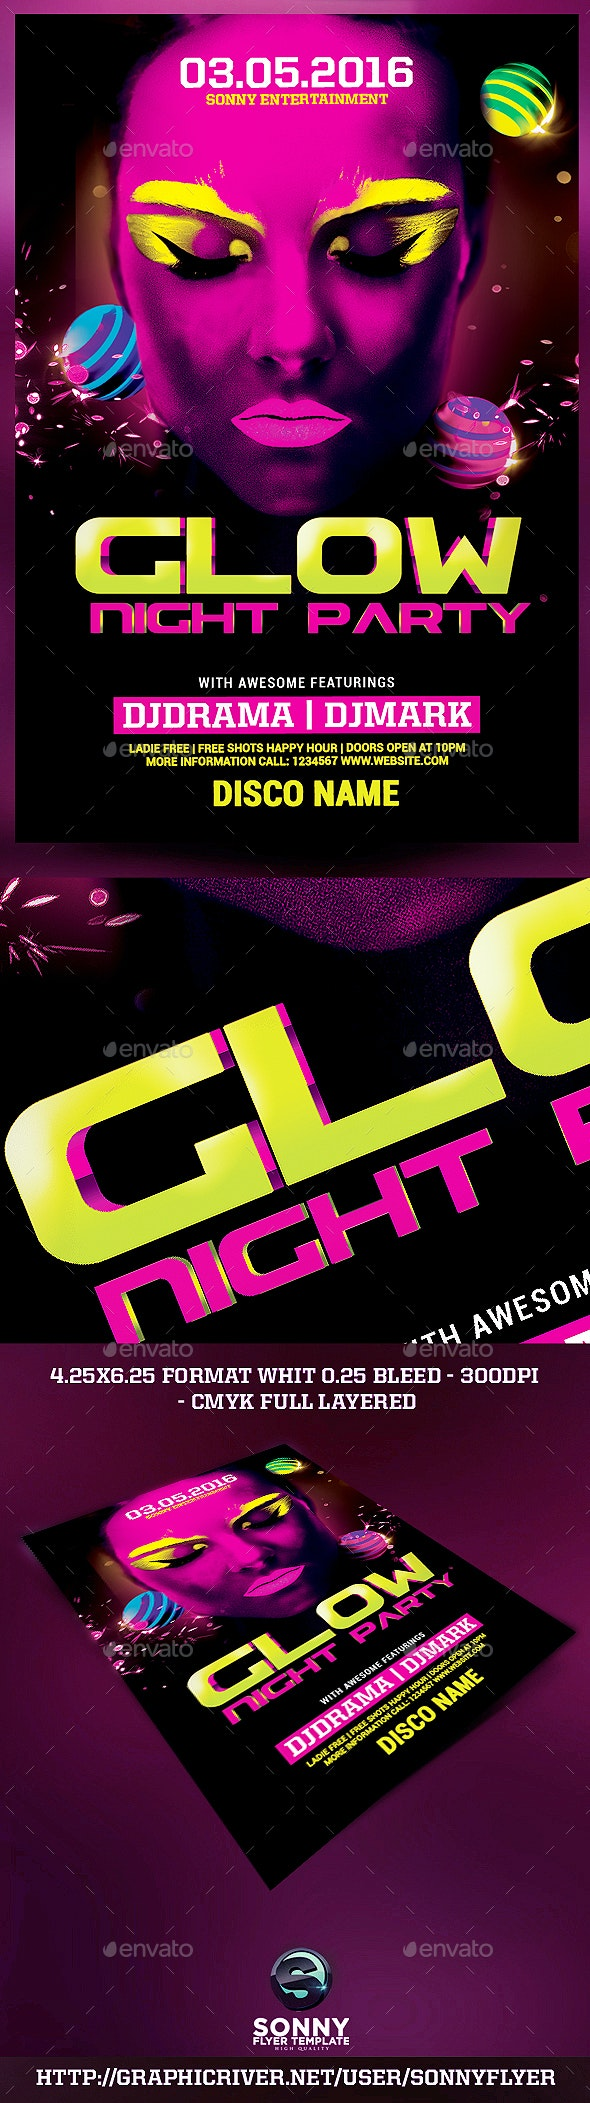 Glow Night Party Flyer Template - Flyers Print Templates